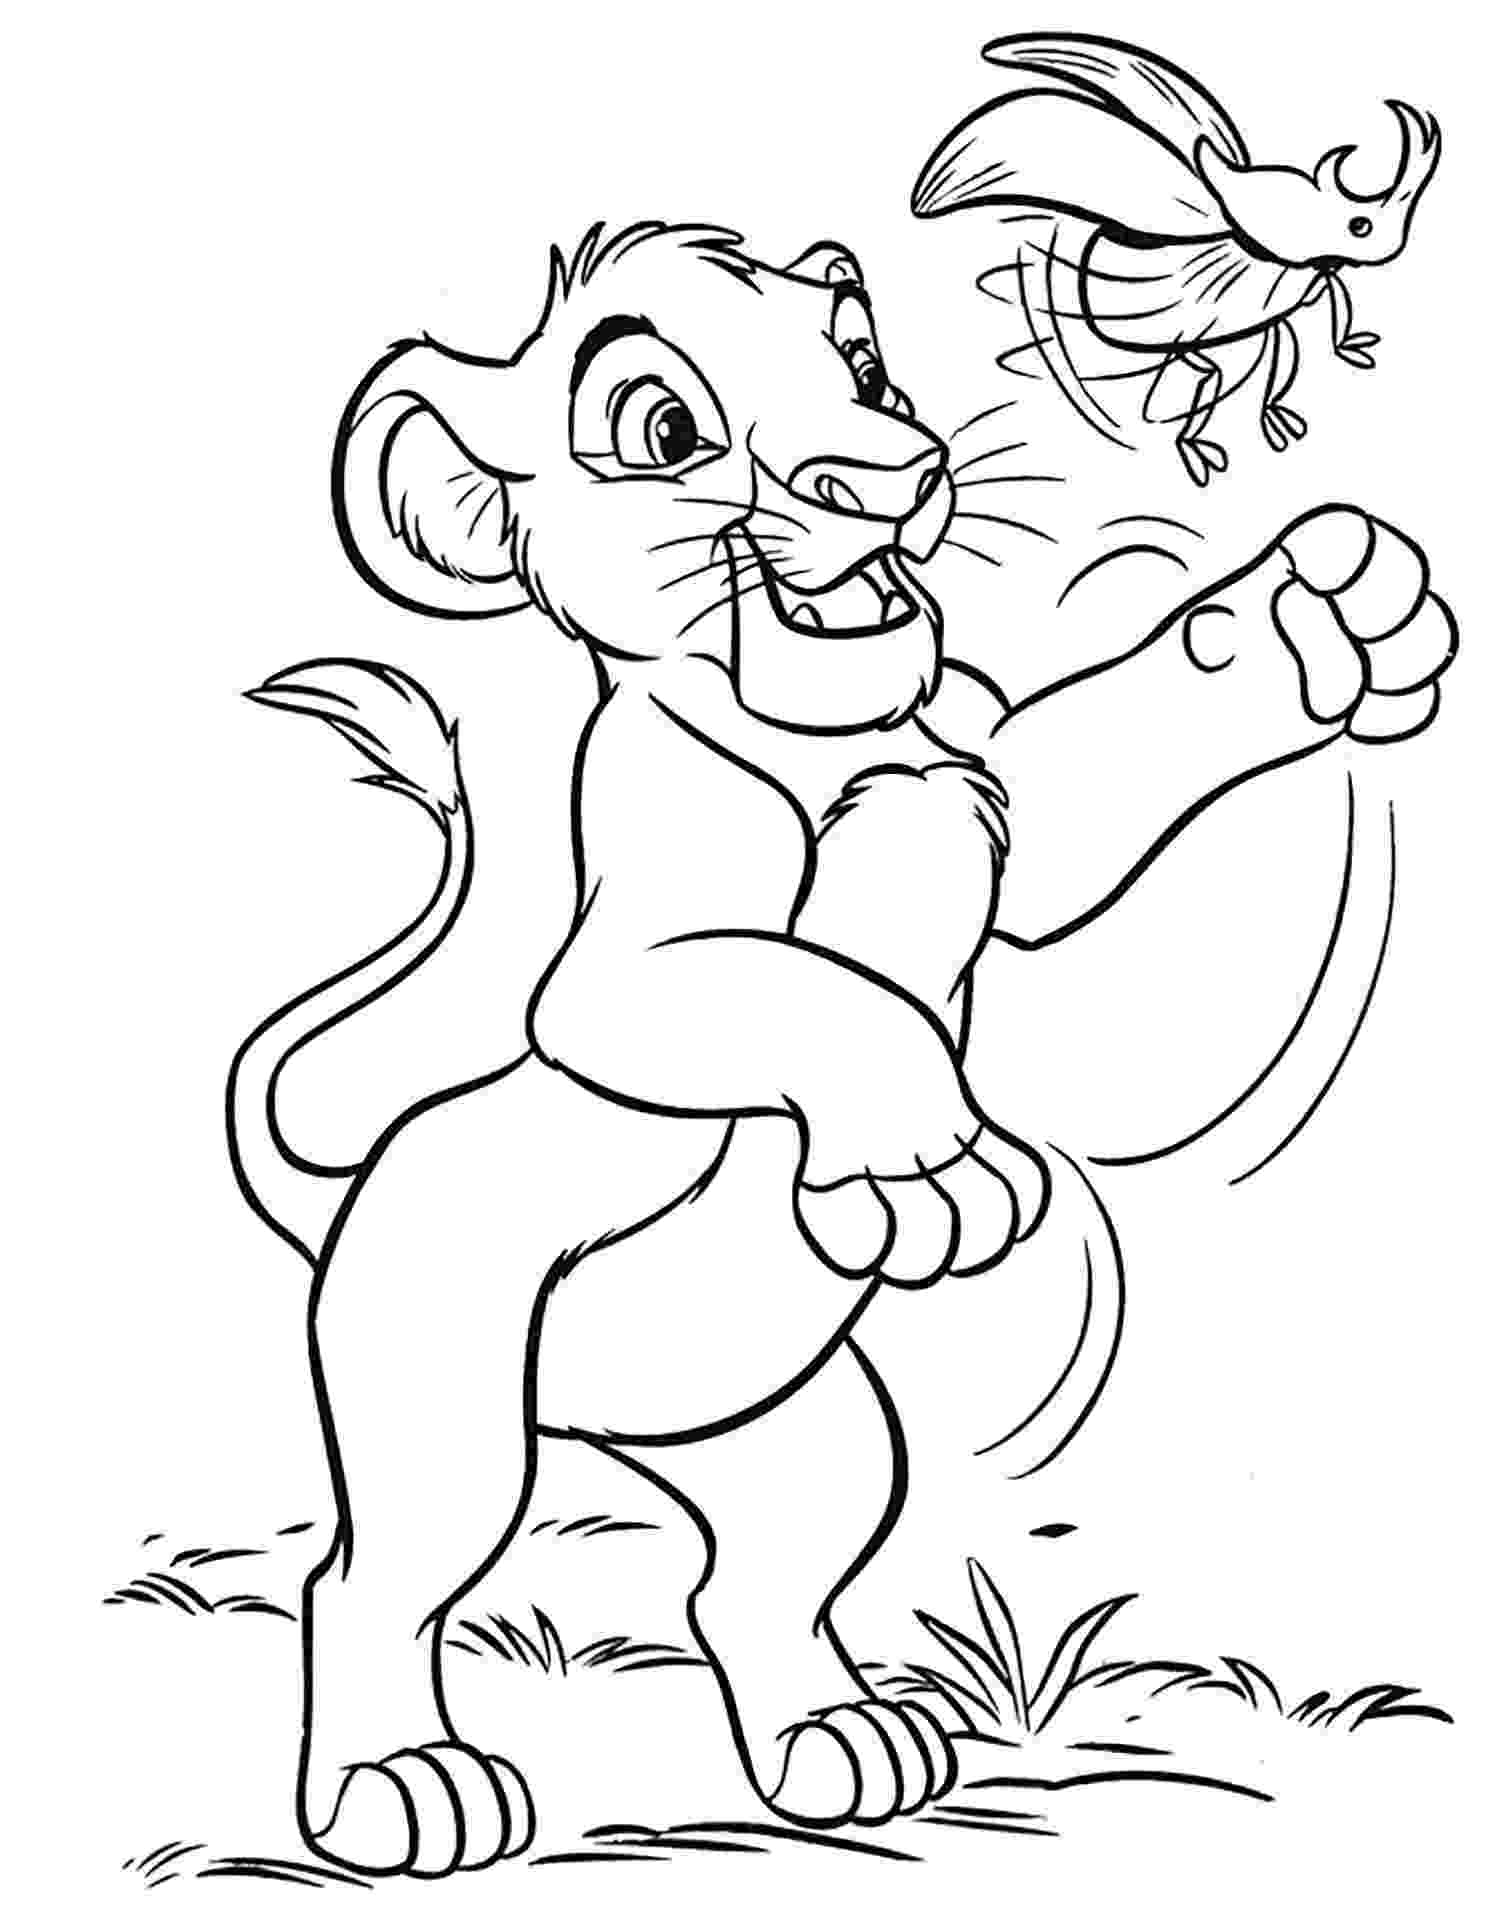 lion king coloring book pages disney coloring pages lion king free large images lion pages book coloring king